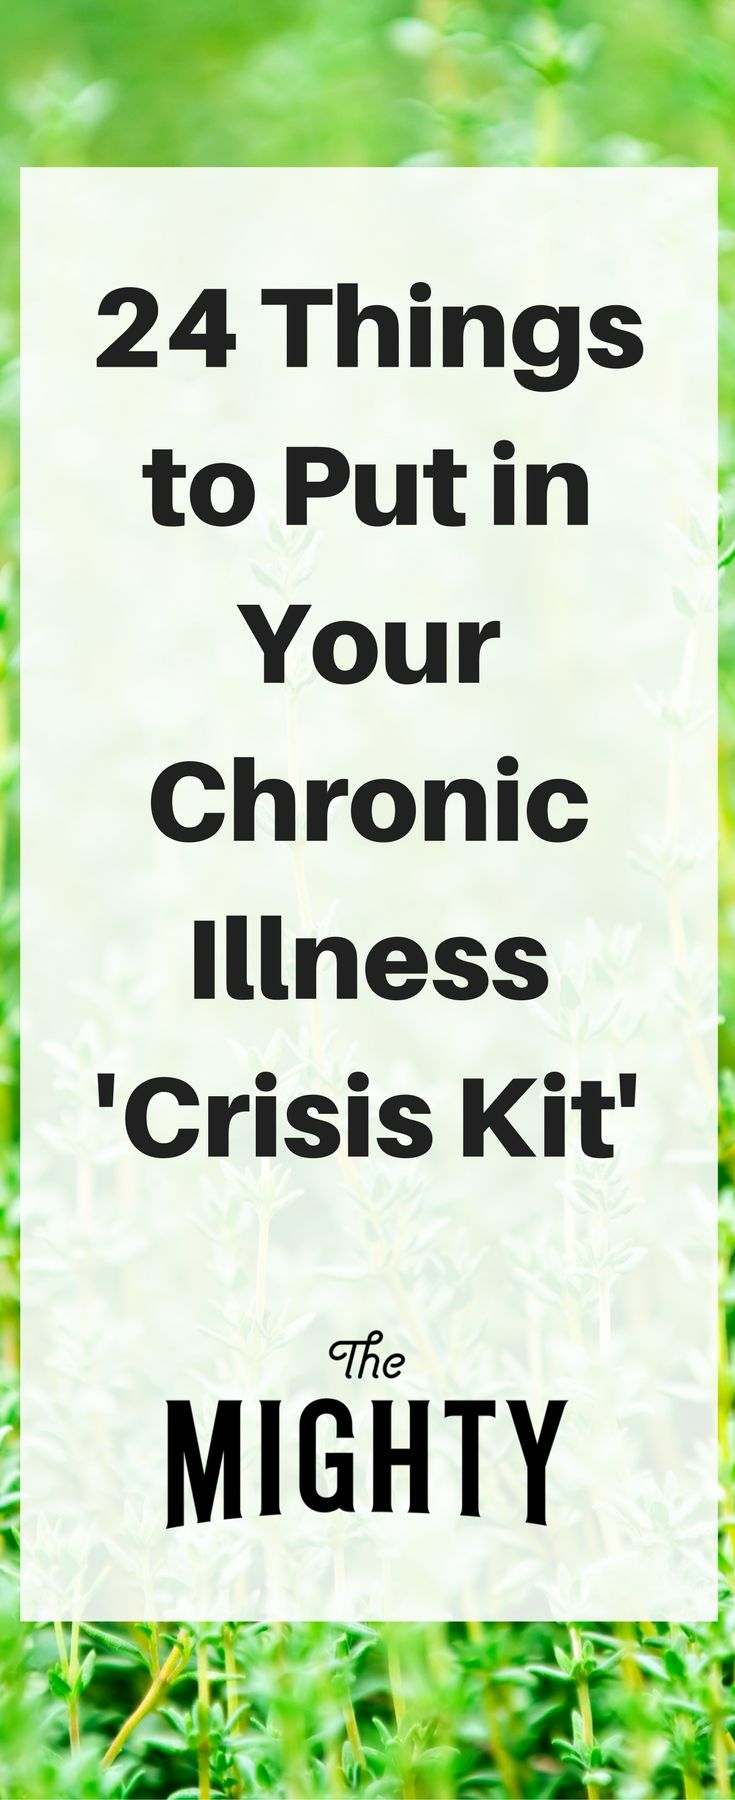 What to Keep in Your Chronic Illness 'Crisis Kit' for Emergencies | The Mighty